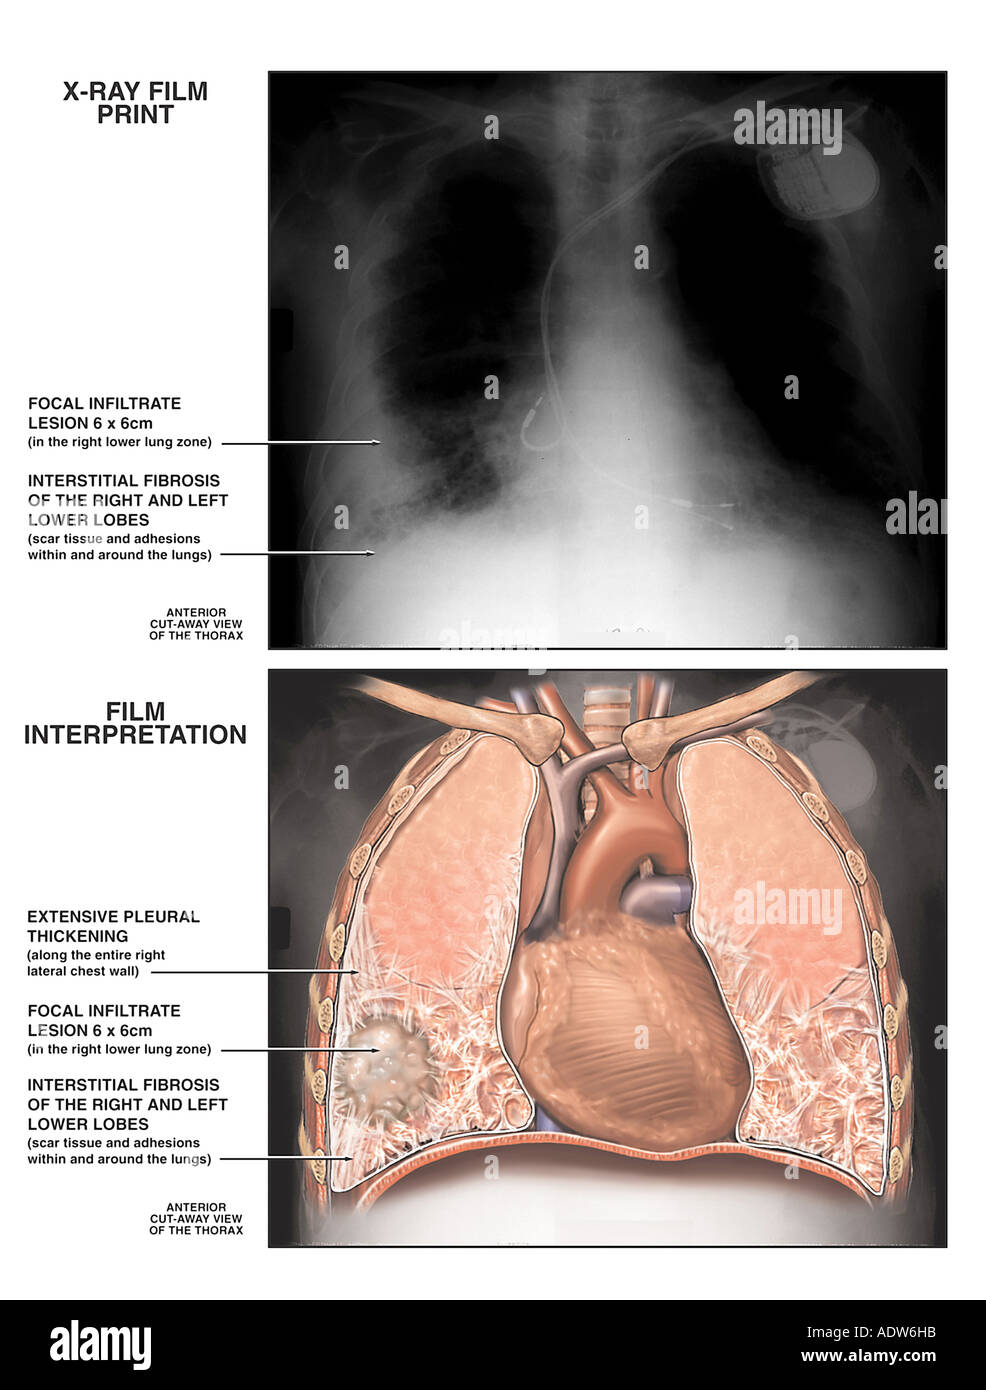 Asbestosis of the Lung - Stock Image